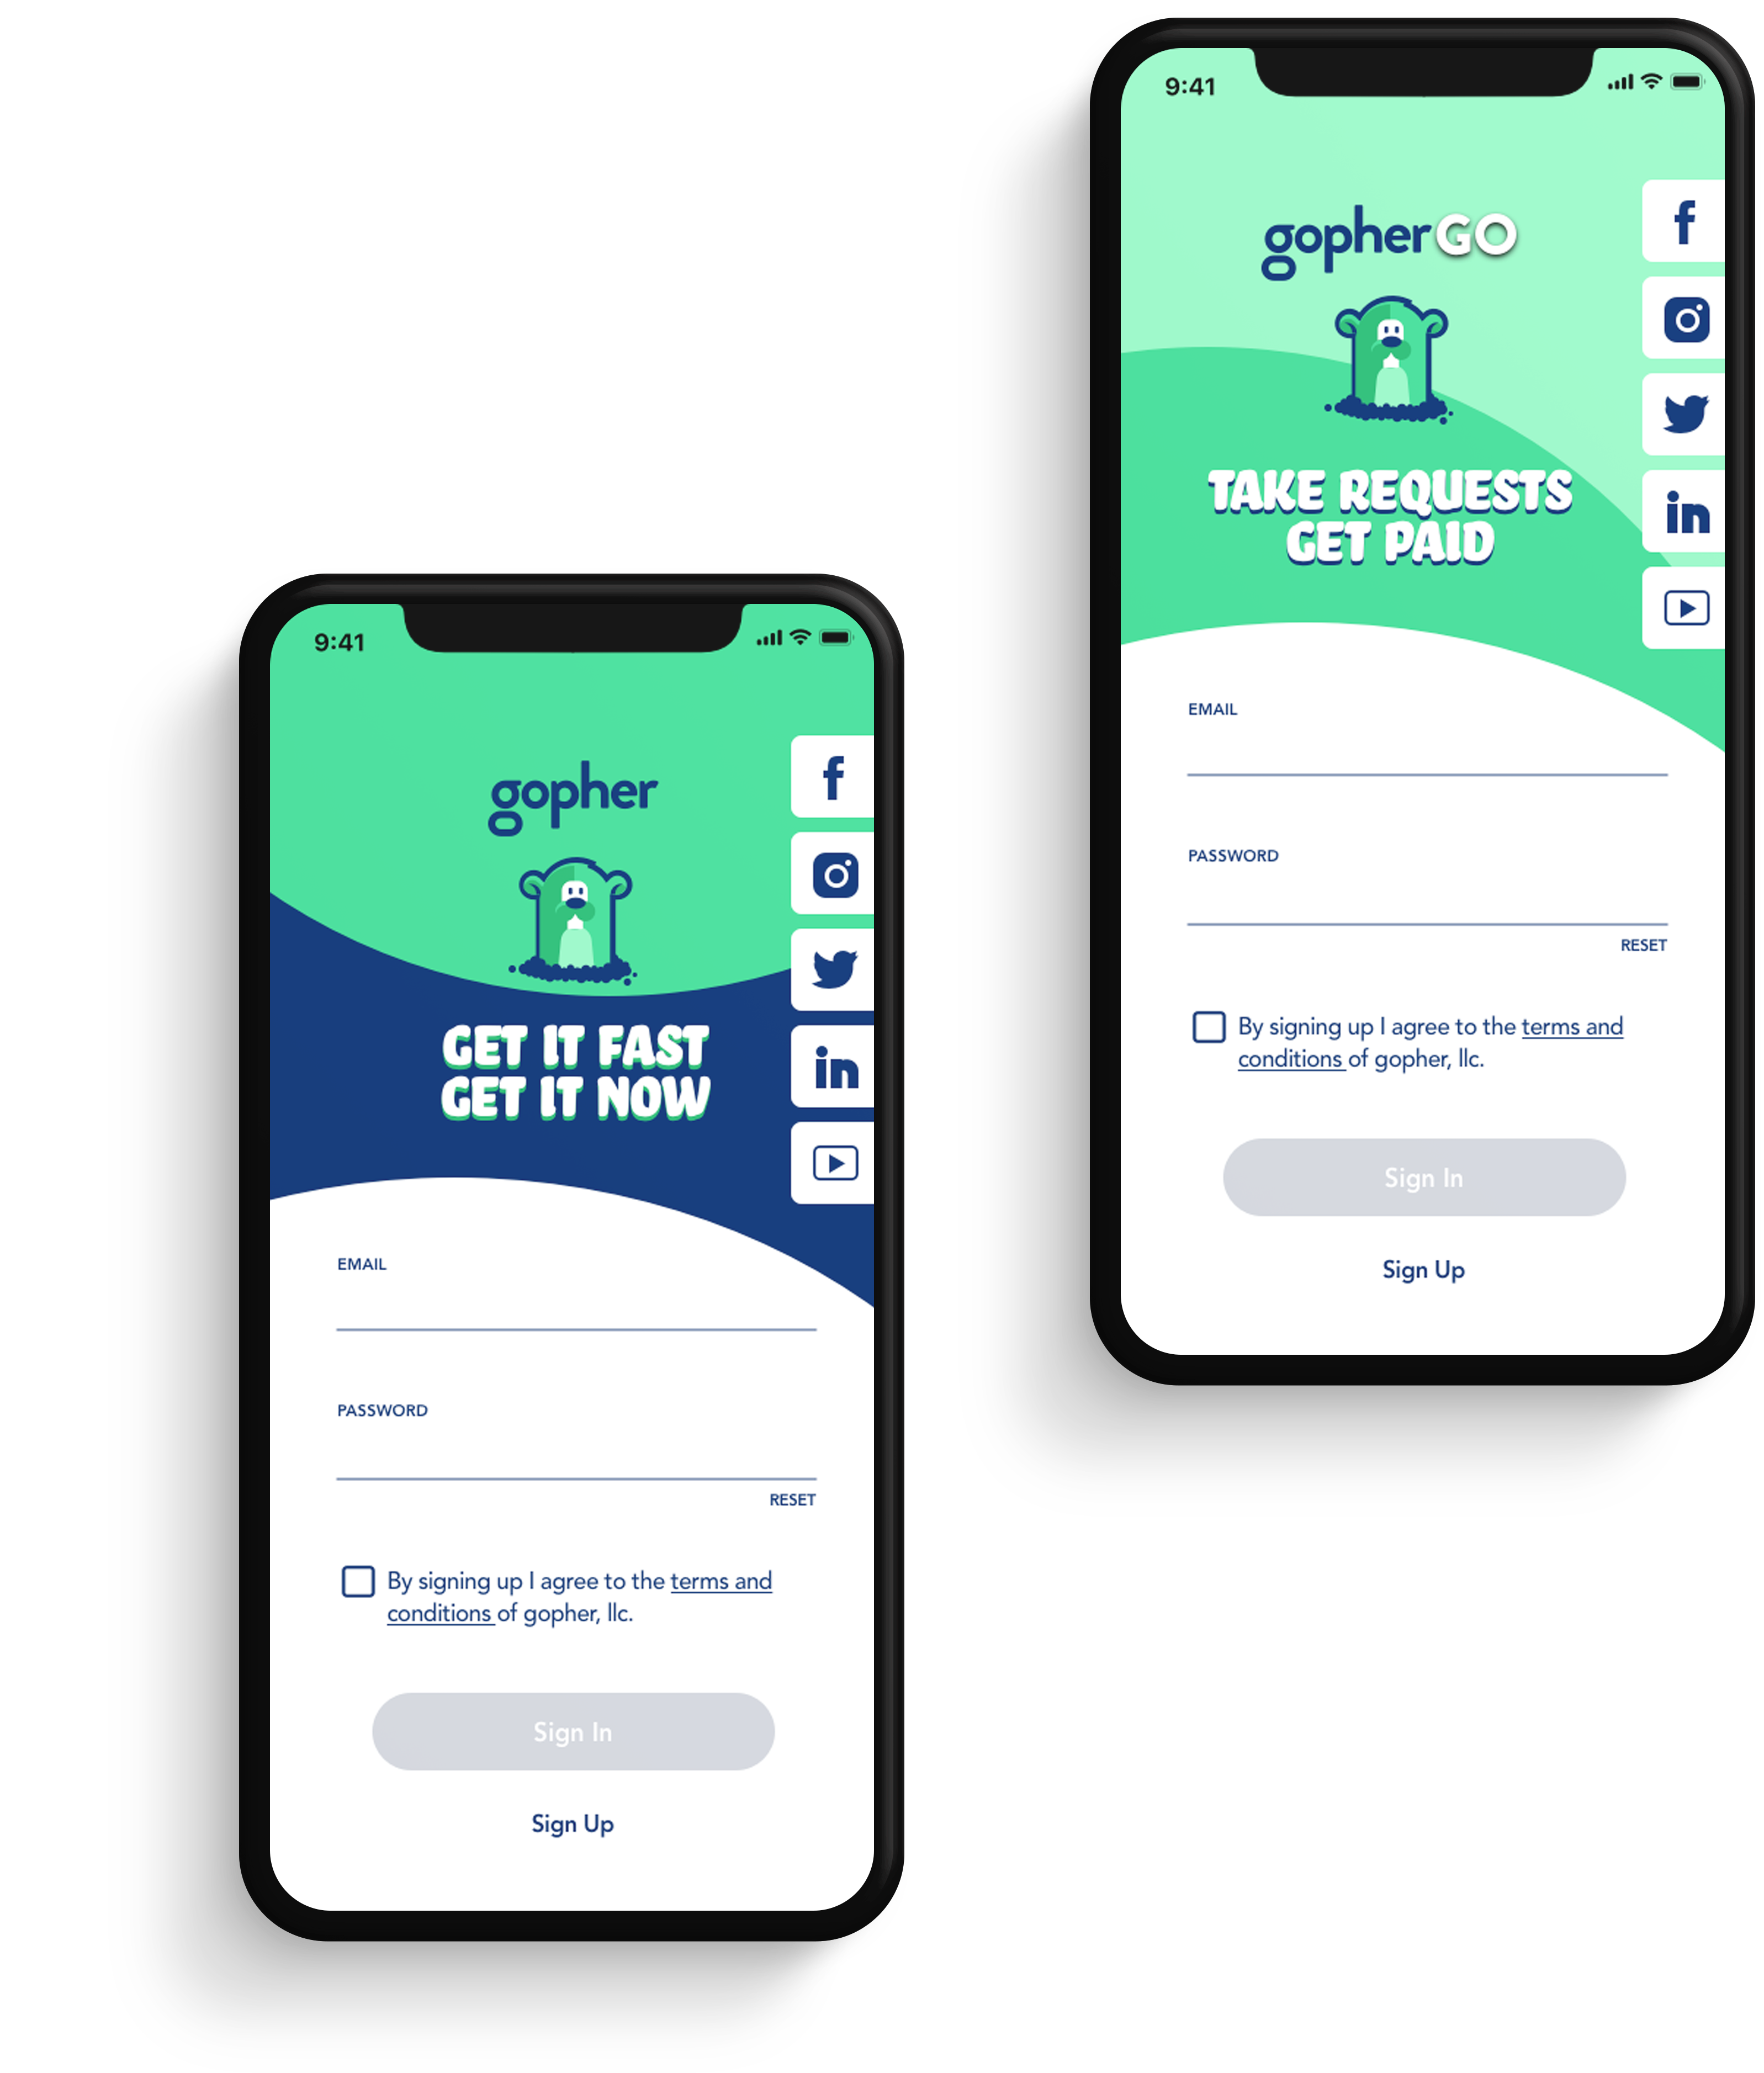 Need it Now? Gopher It! A mobile app that gives complete control to the user, whatever you need, whenever you need it, at the price you set.